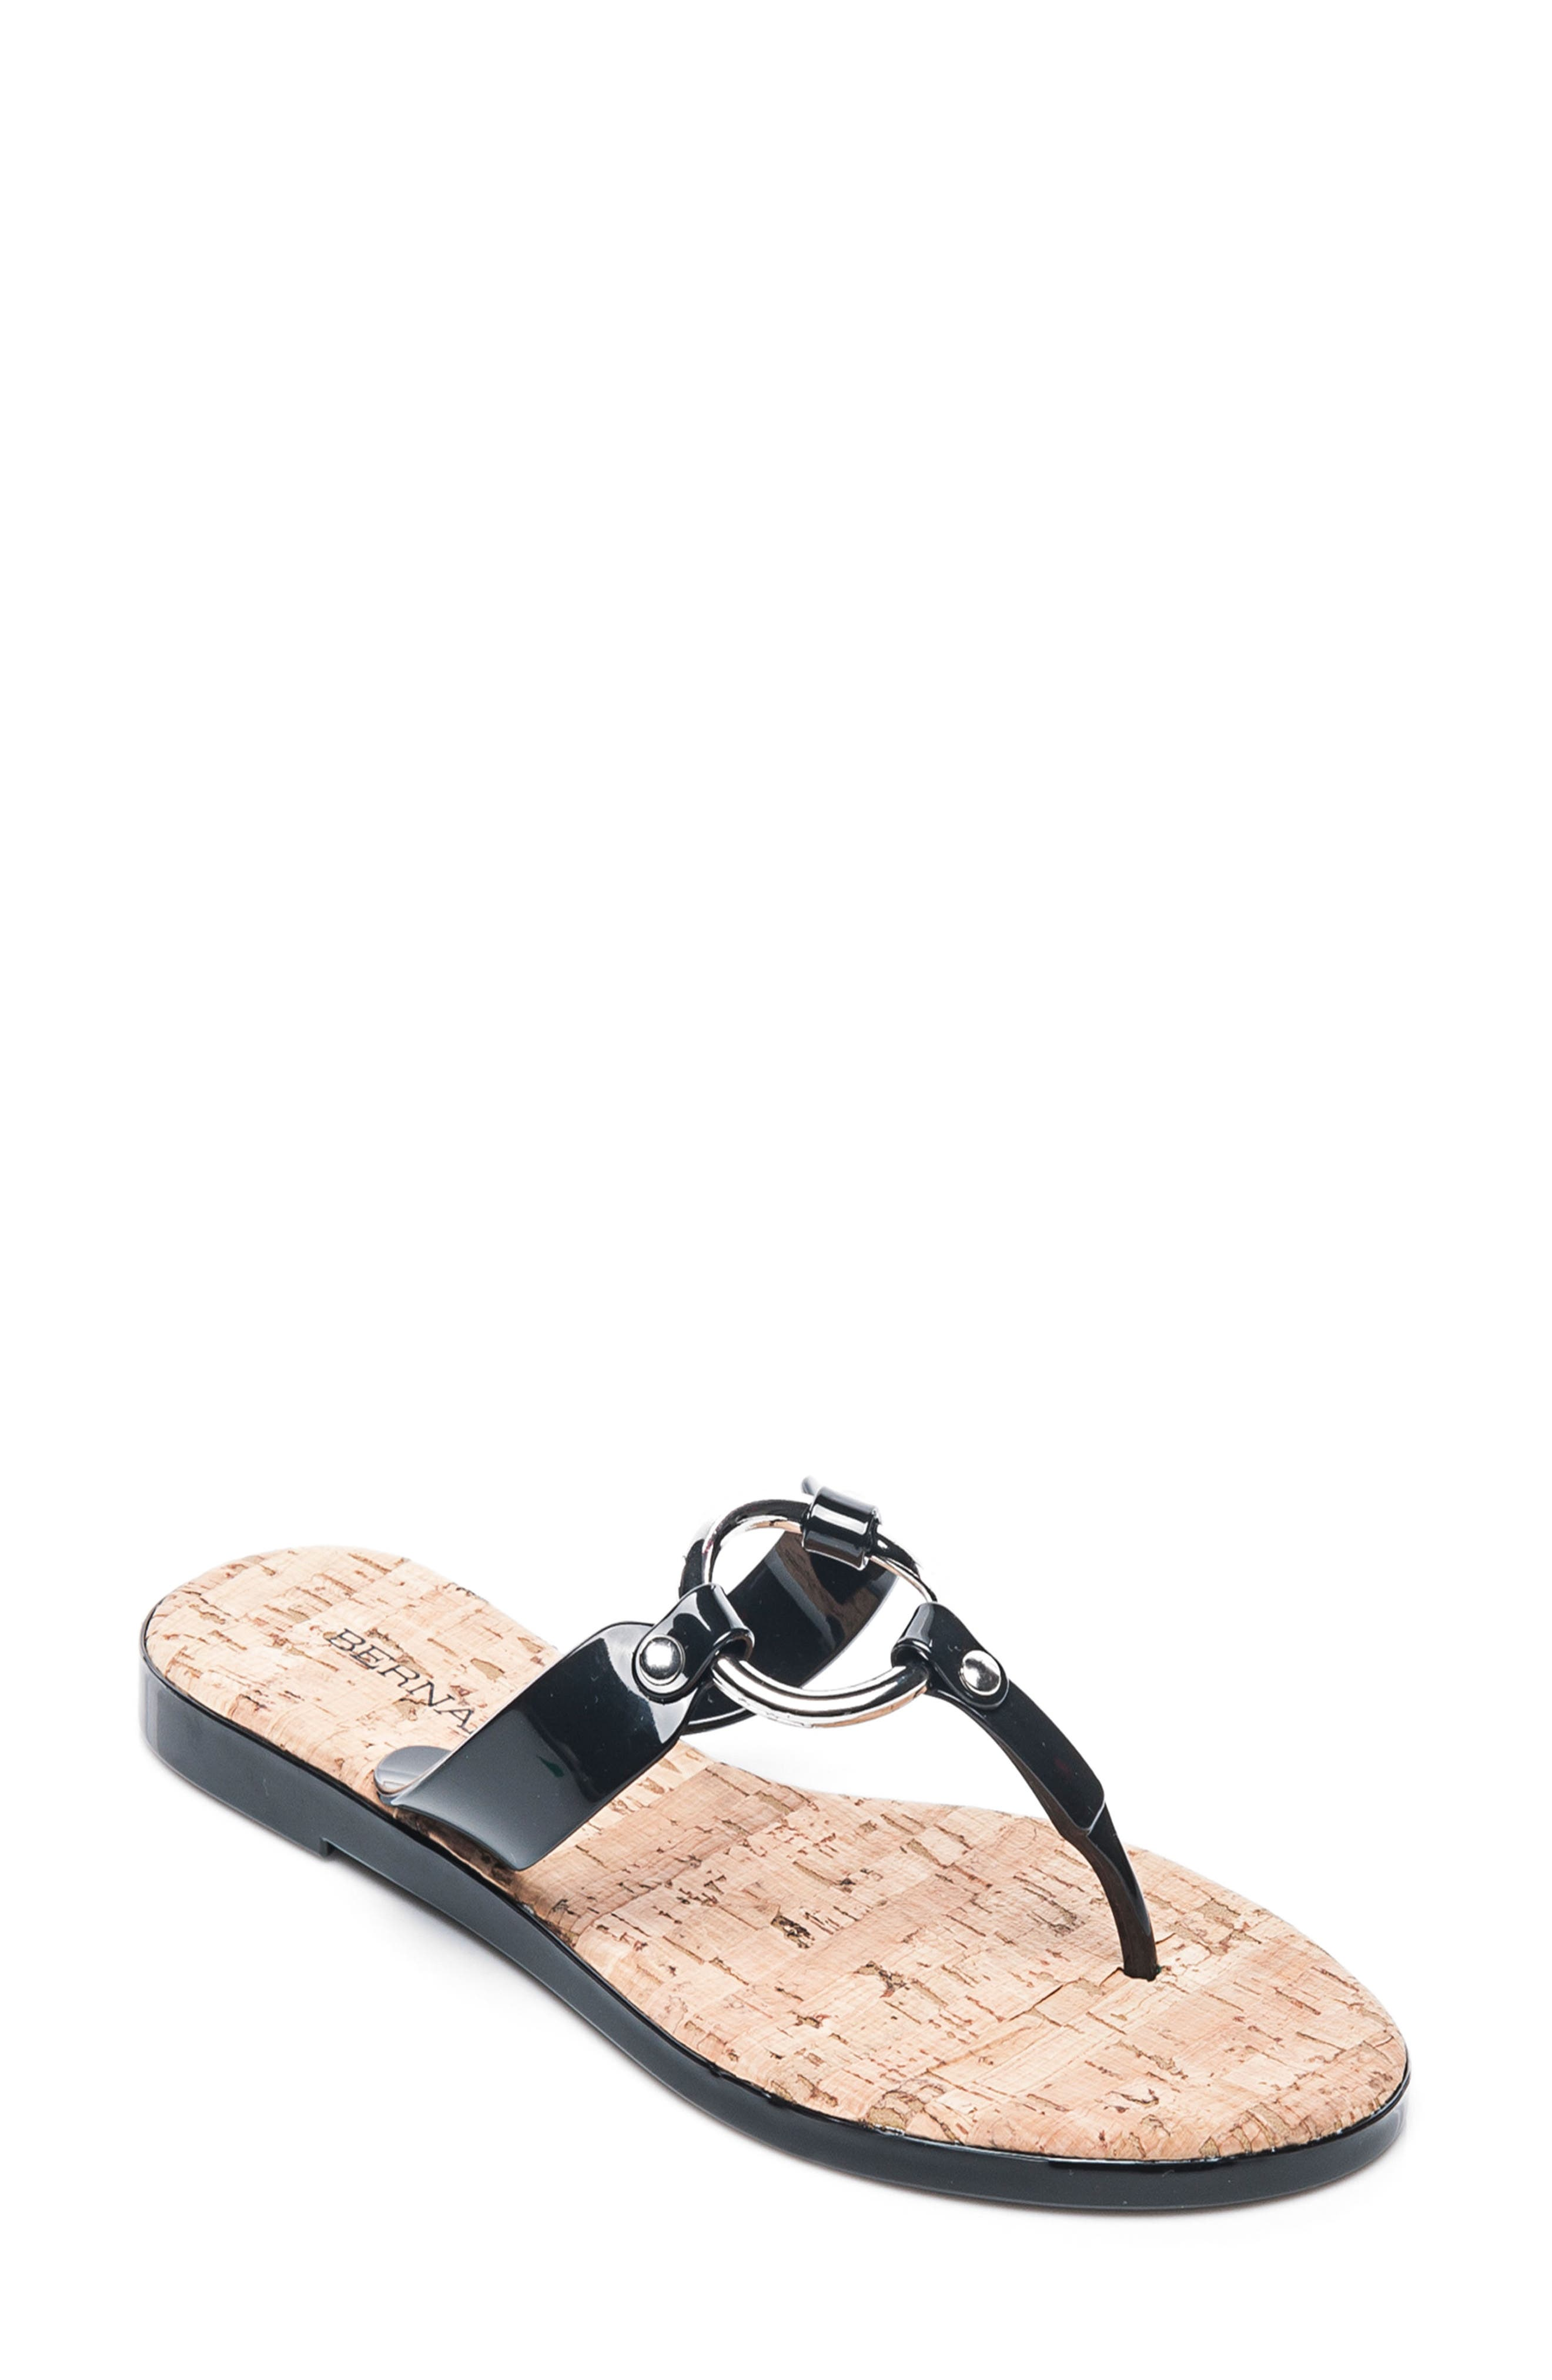 BERNARDO FOOTWEAR,                             Matrix Flip Flop,                             Main thumbnail 1, color,                             001